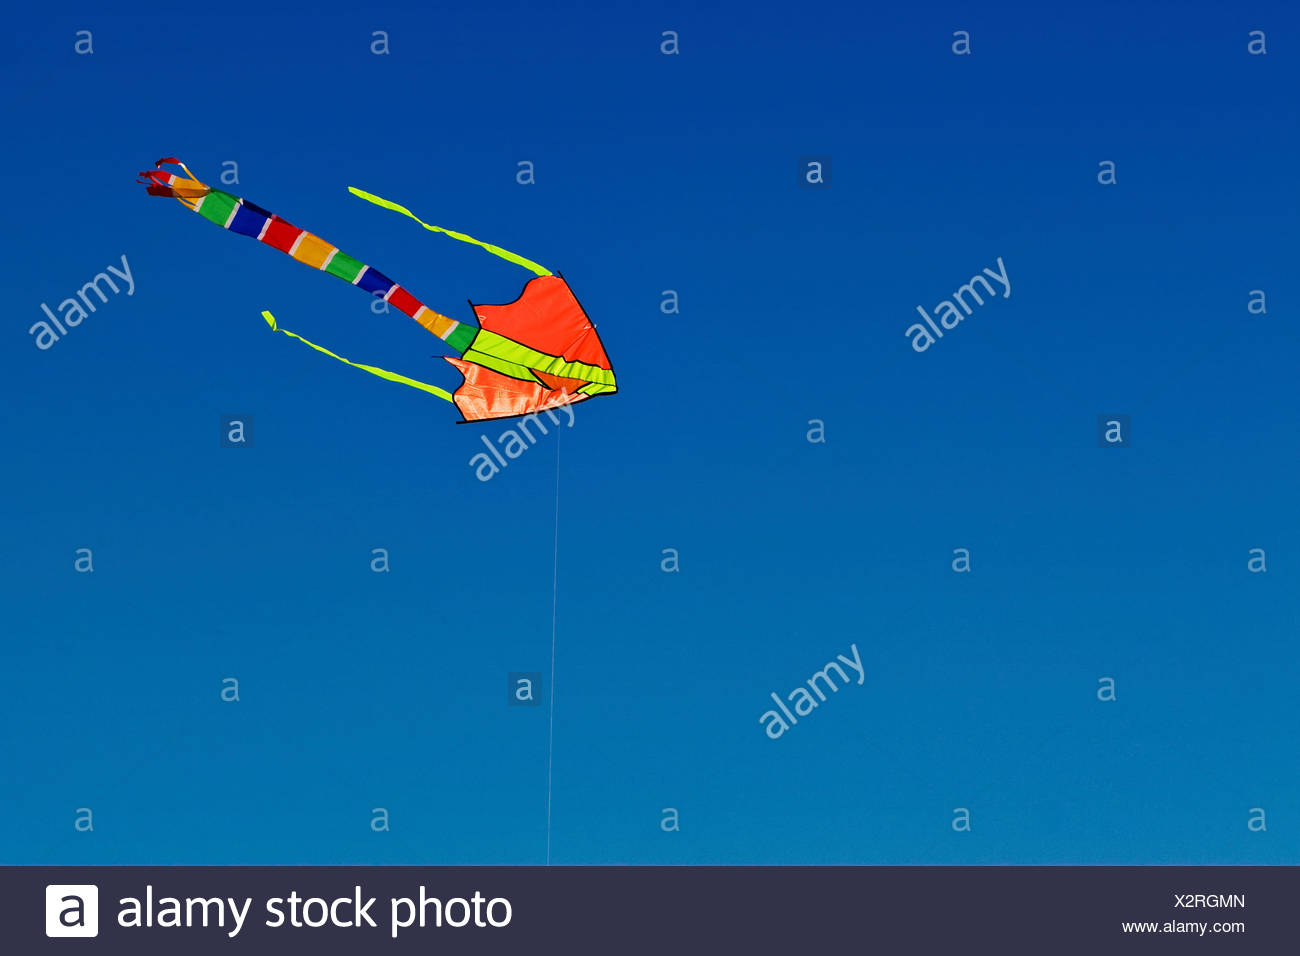 Colorful kite fluttering and flying in blue sky - Stock Image